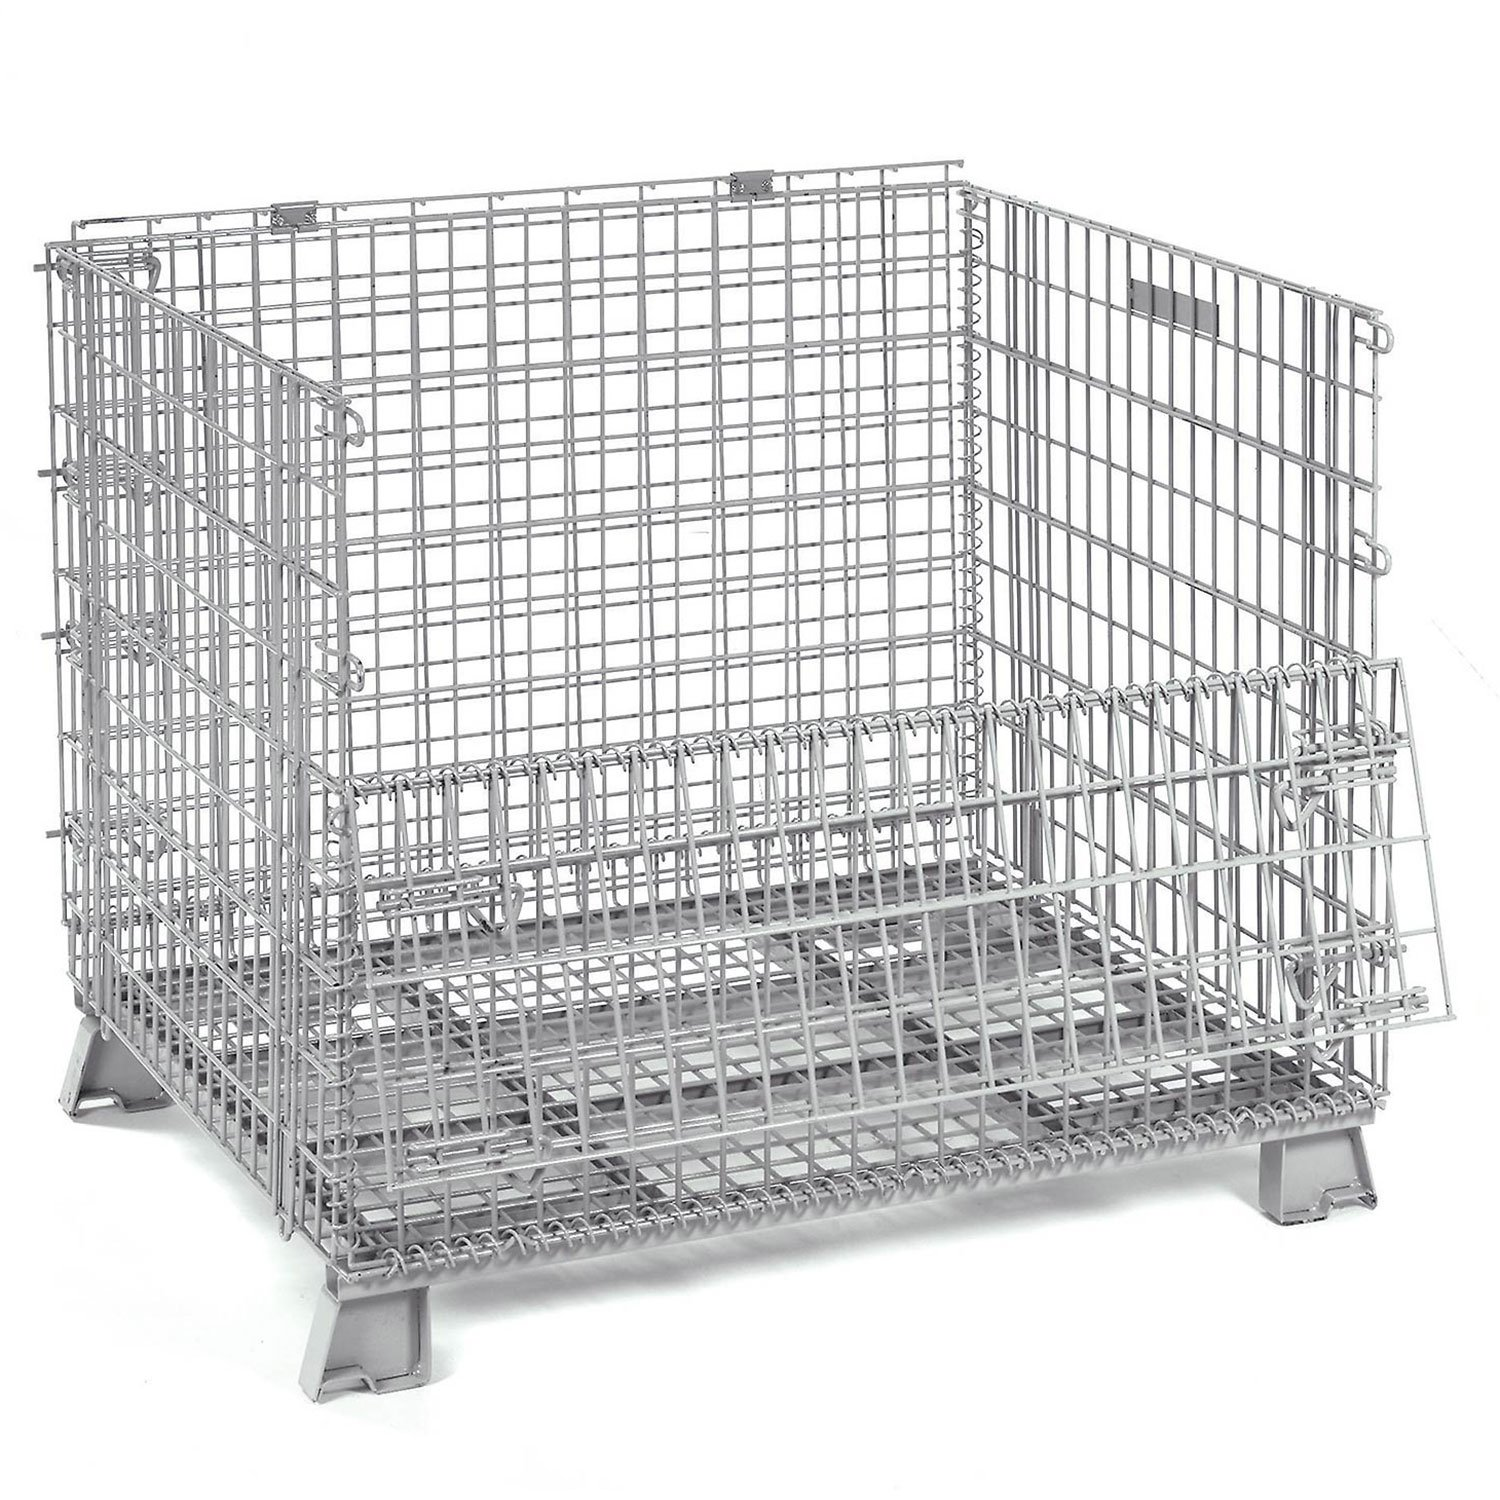 40x32x34-1/2 Folding Wire Container, 4000 Lb Capacity